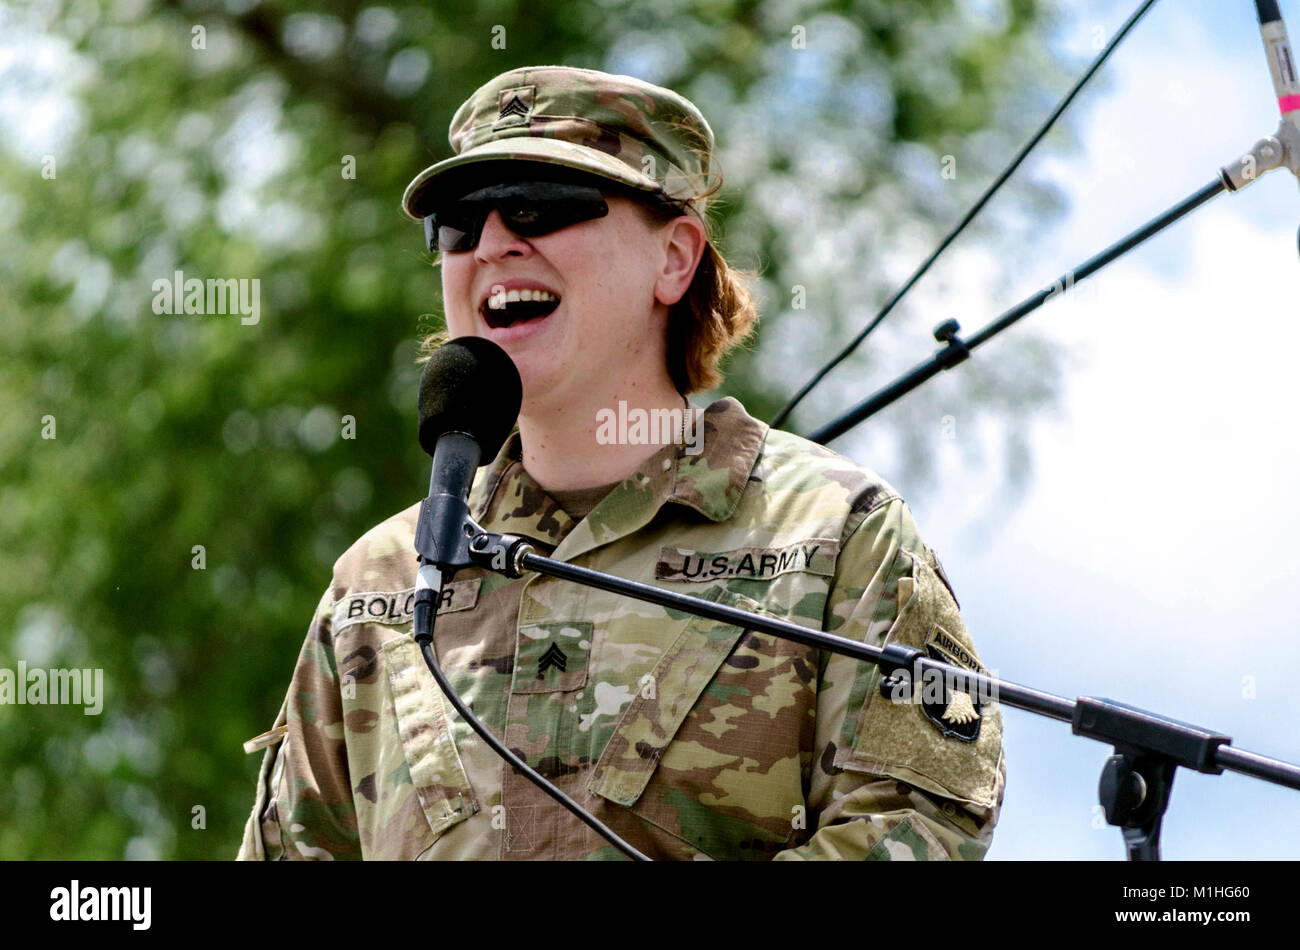 Sgt. Katherine Bolcar, 101st Airborne Division Band and vocalist for Big 5, serenades the crowd gathered at the - Stock Image